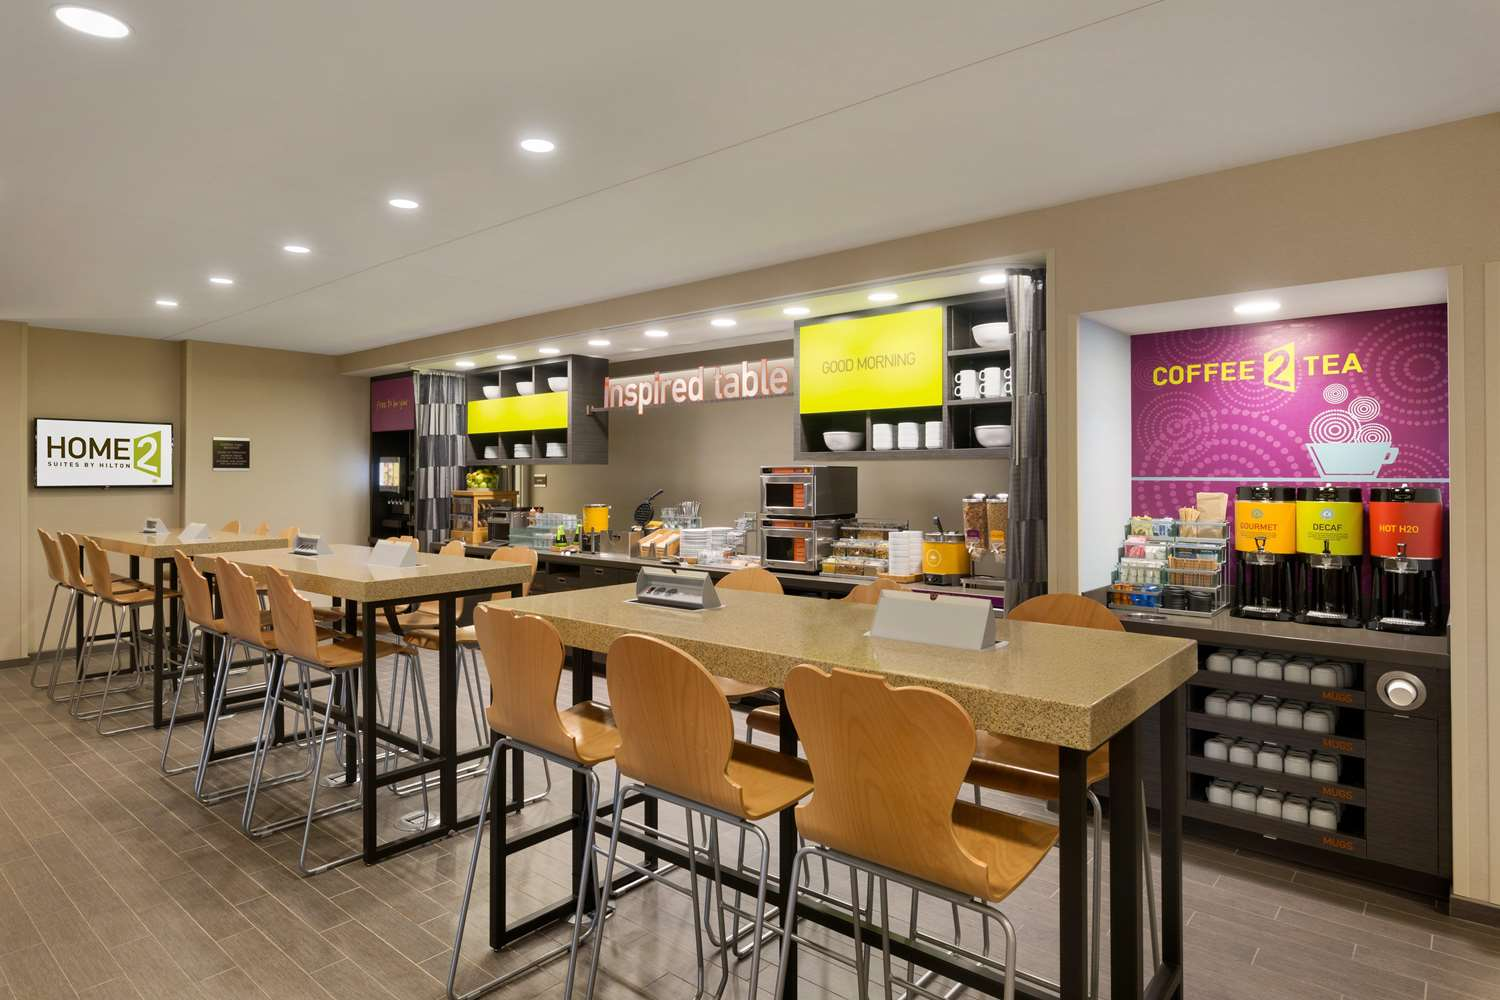 Restaurant - Home2 Suites by Hilton York